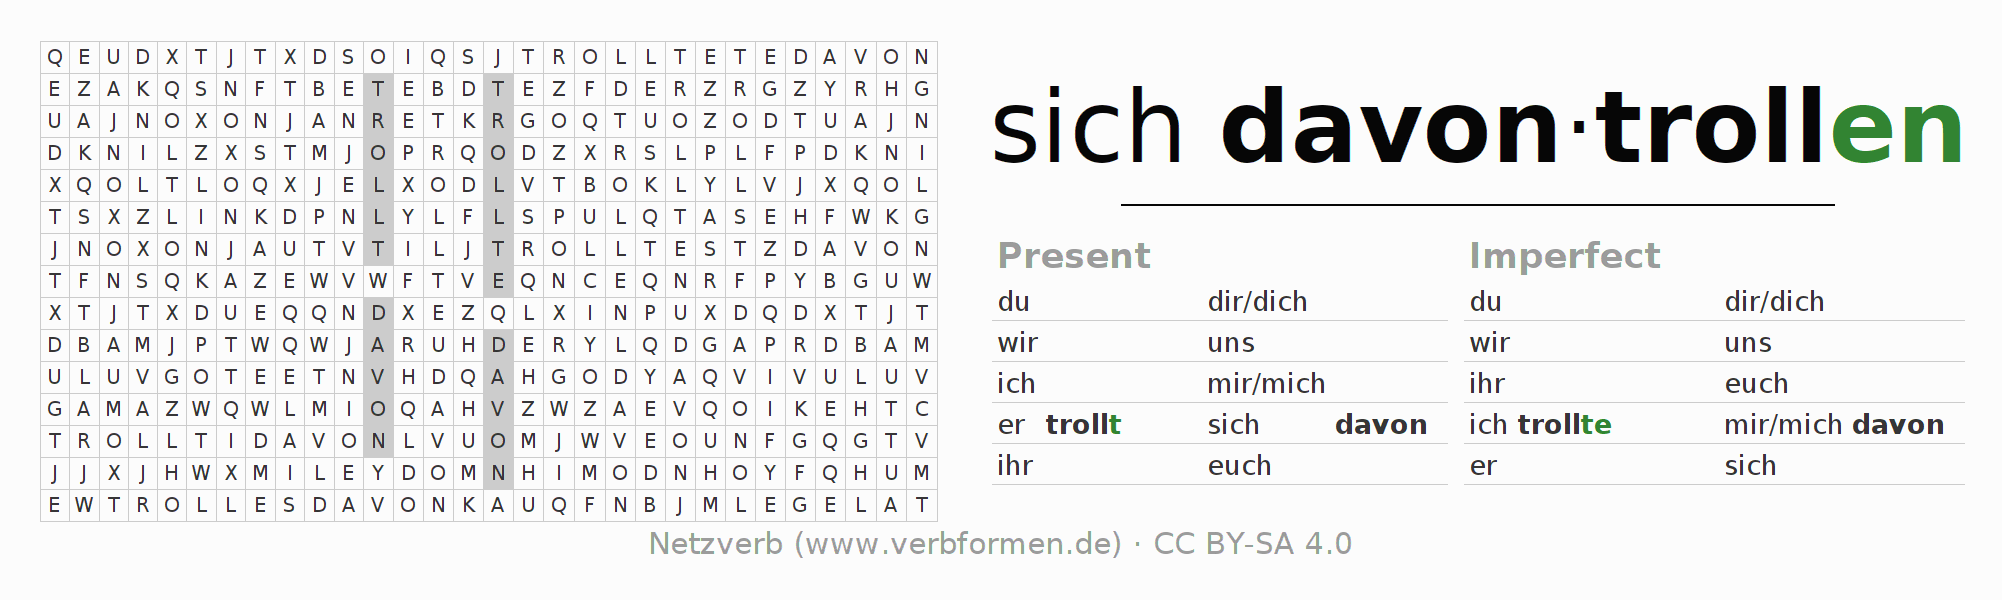 Word search puzzle for the conjugation of the verb sich davontrollen